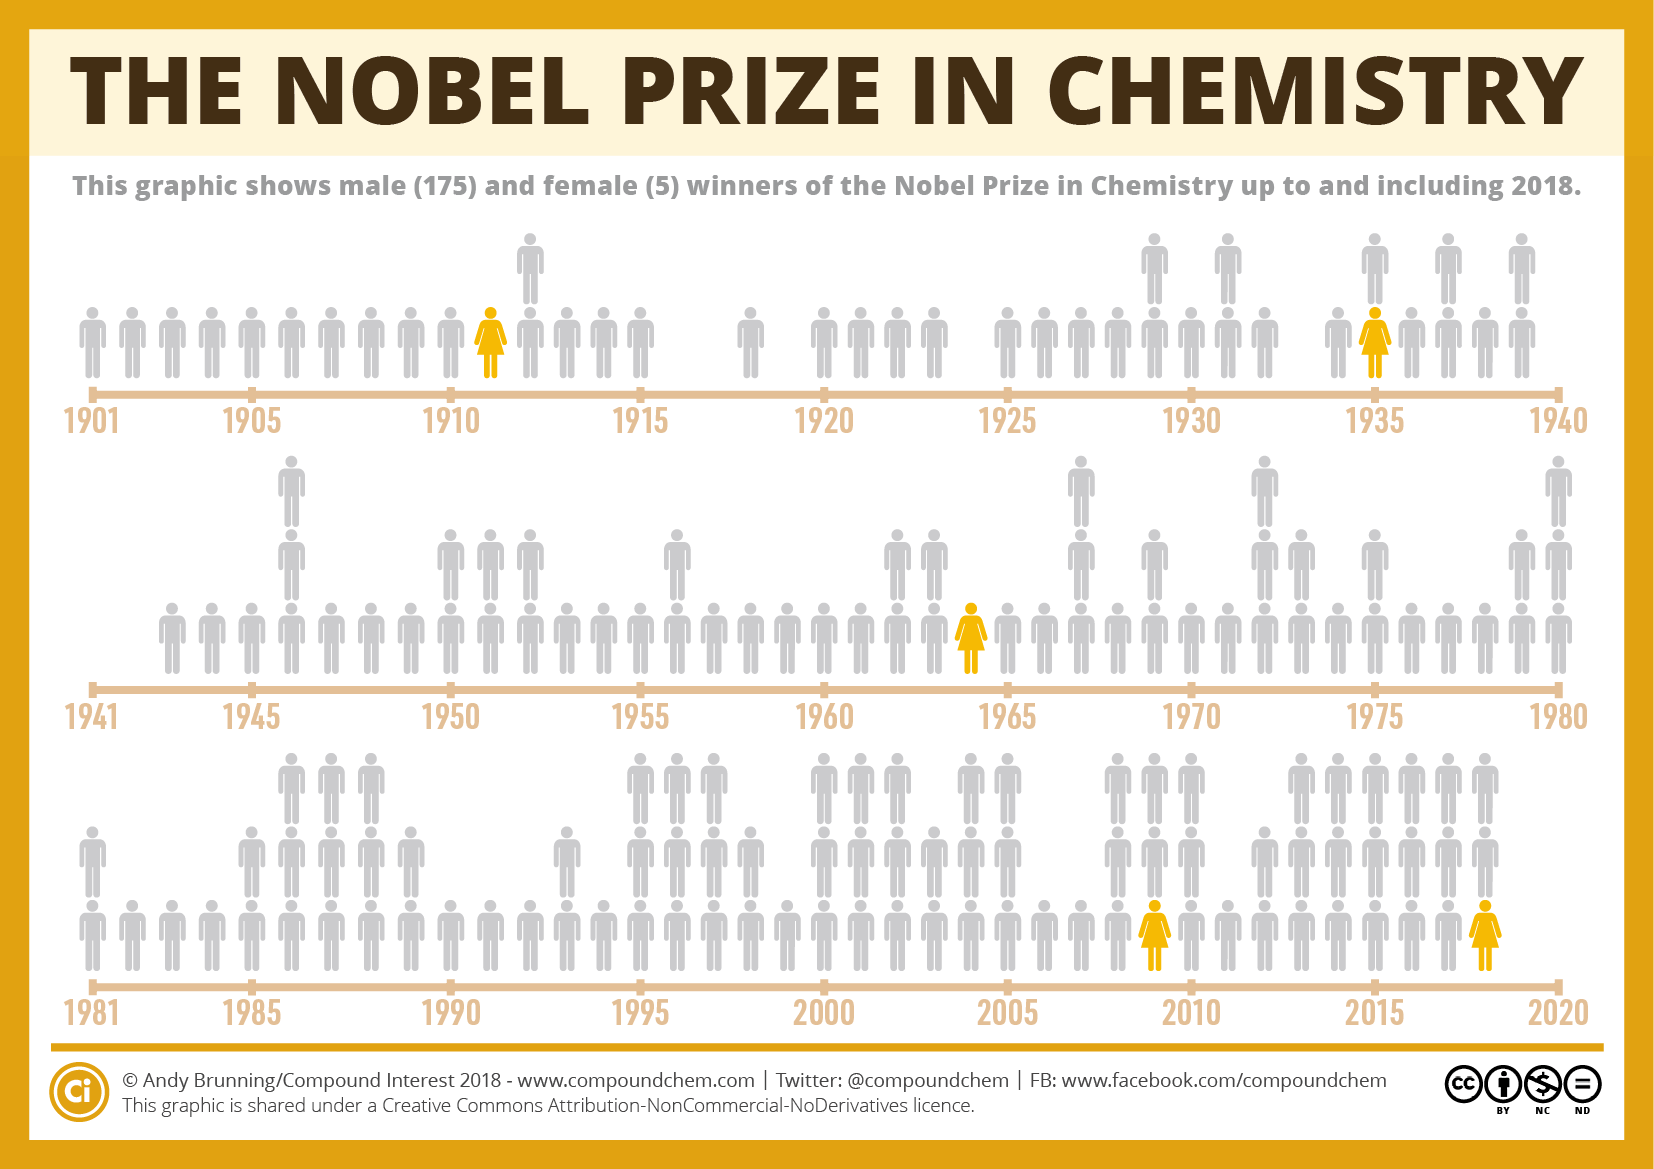 How many women have won the Nobel Prize in Chemistry?